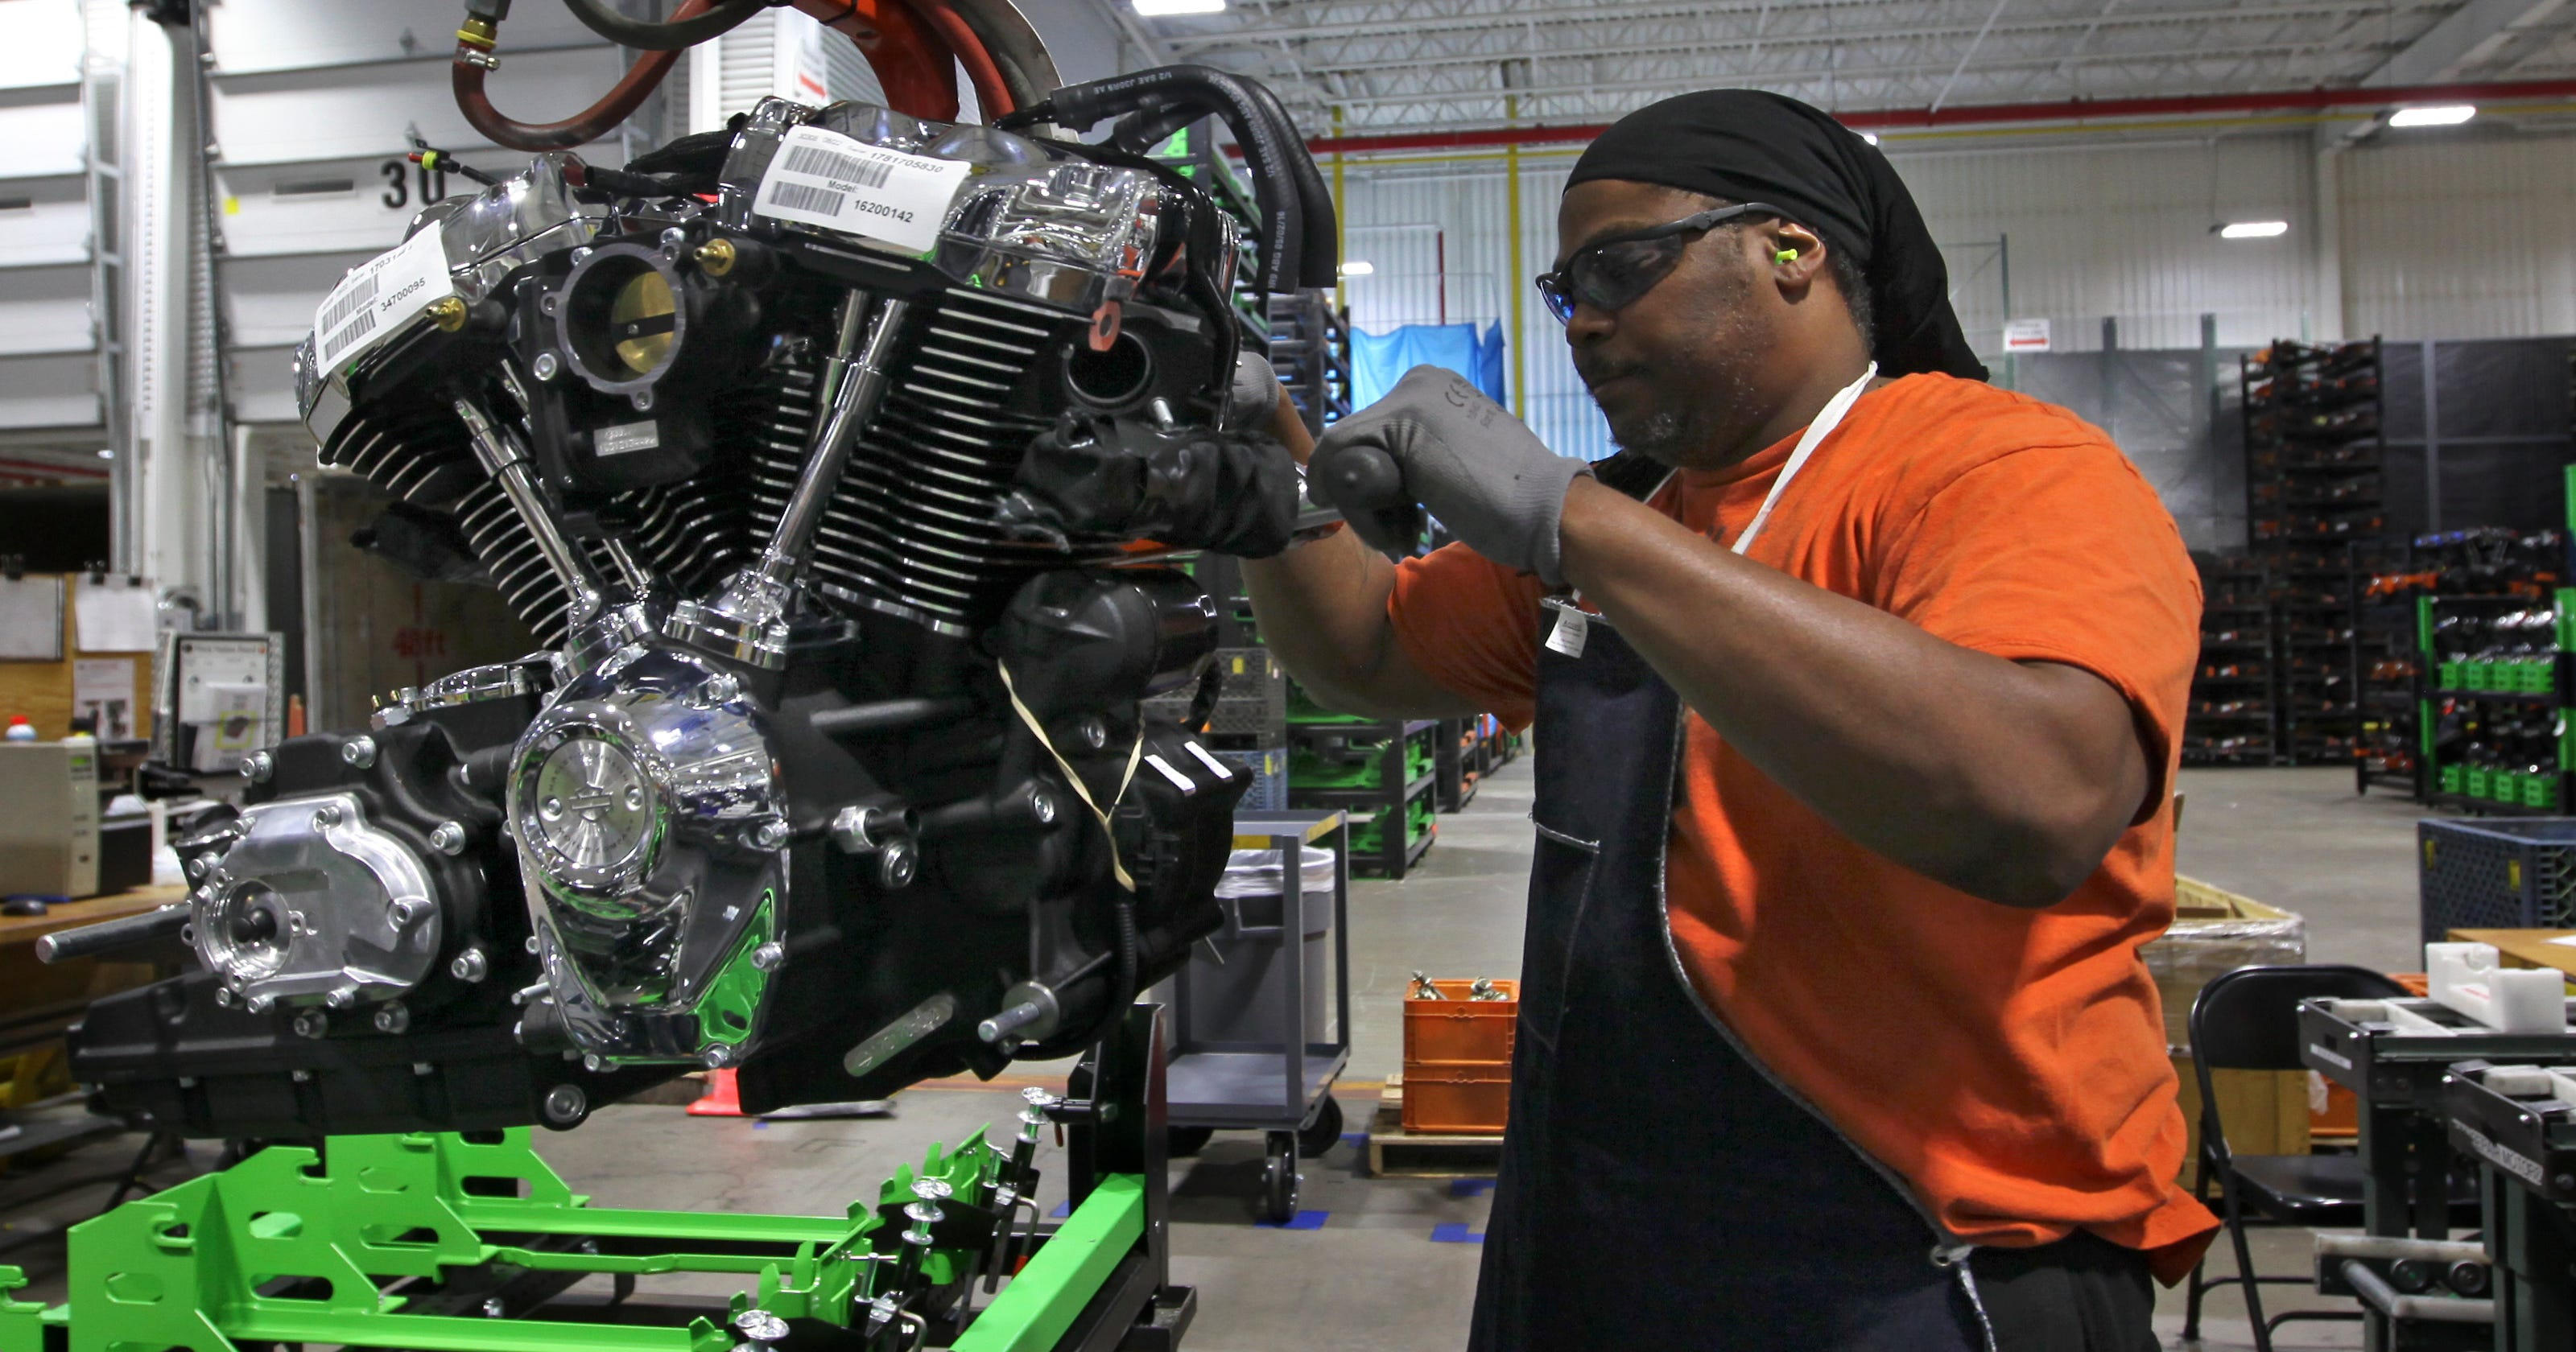 Harley-Davidson: Labor unions end partnership agreement with